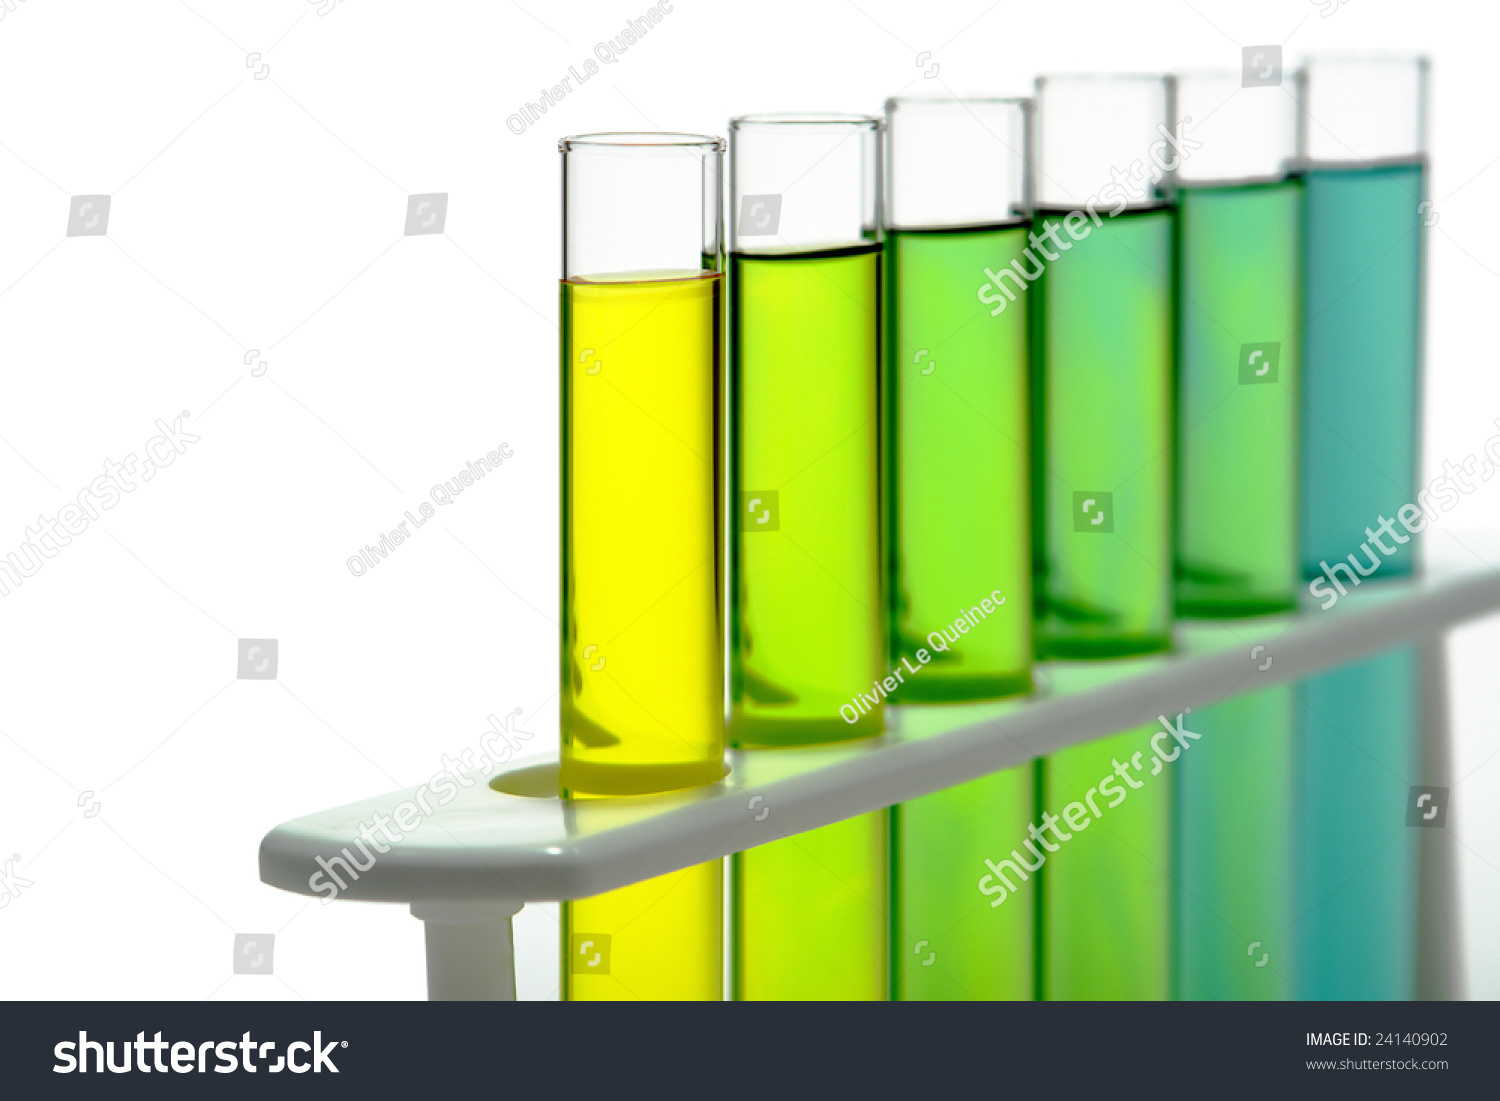 Laboratory Glass Test Tubes Filled With Liquid On A Rack For An Experiment In A Science Research